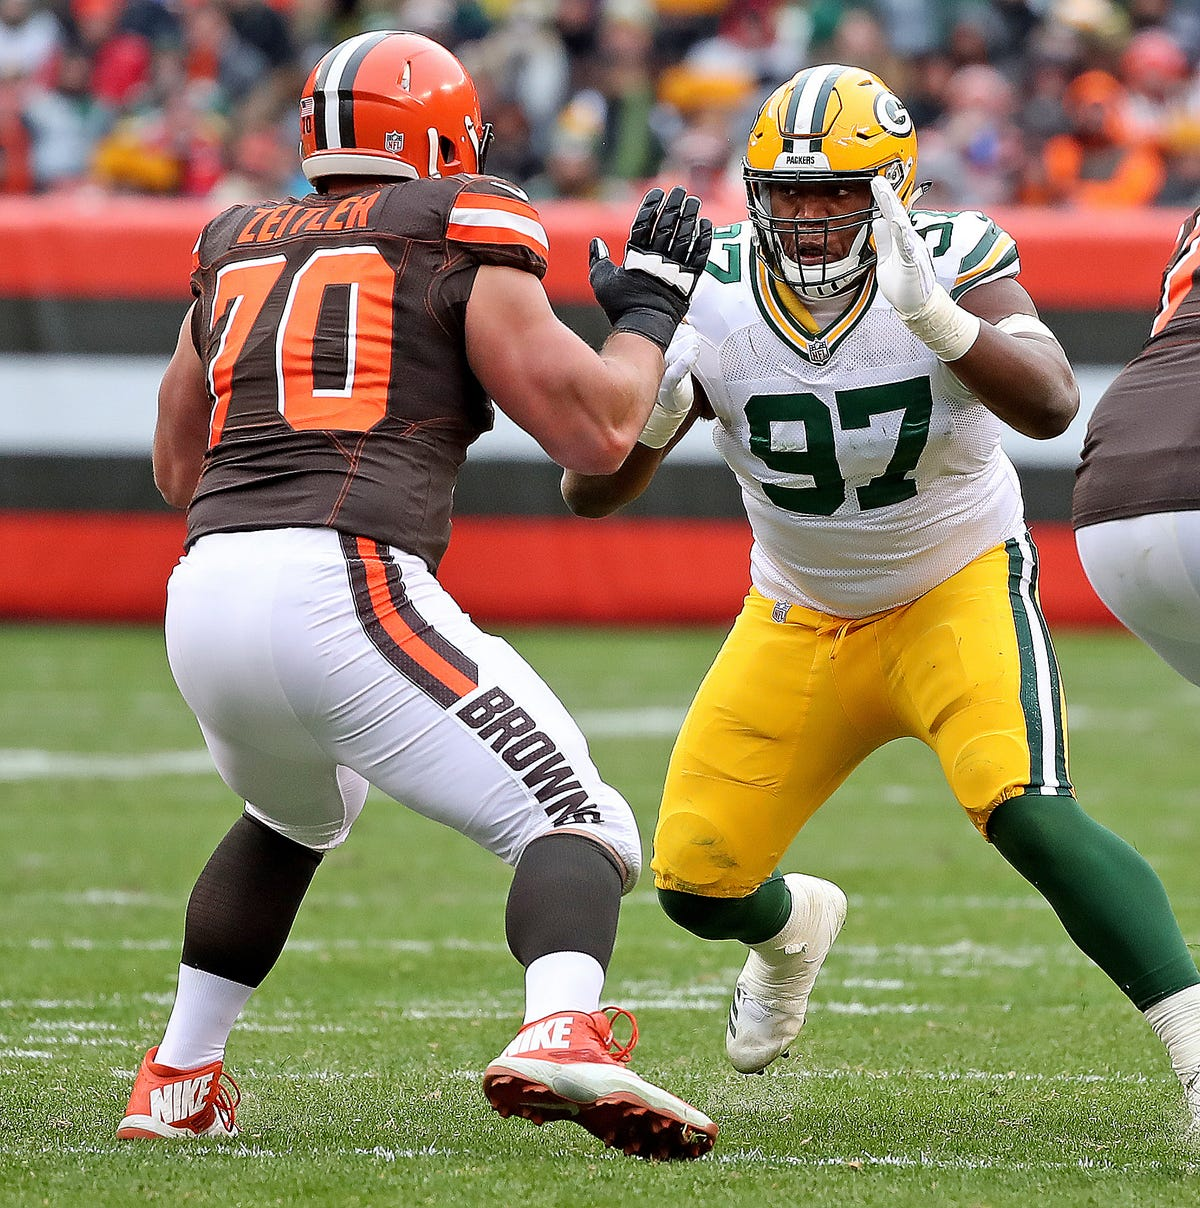 Packers Roster Builder preview: Offense seeks Aaron Rodgers